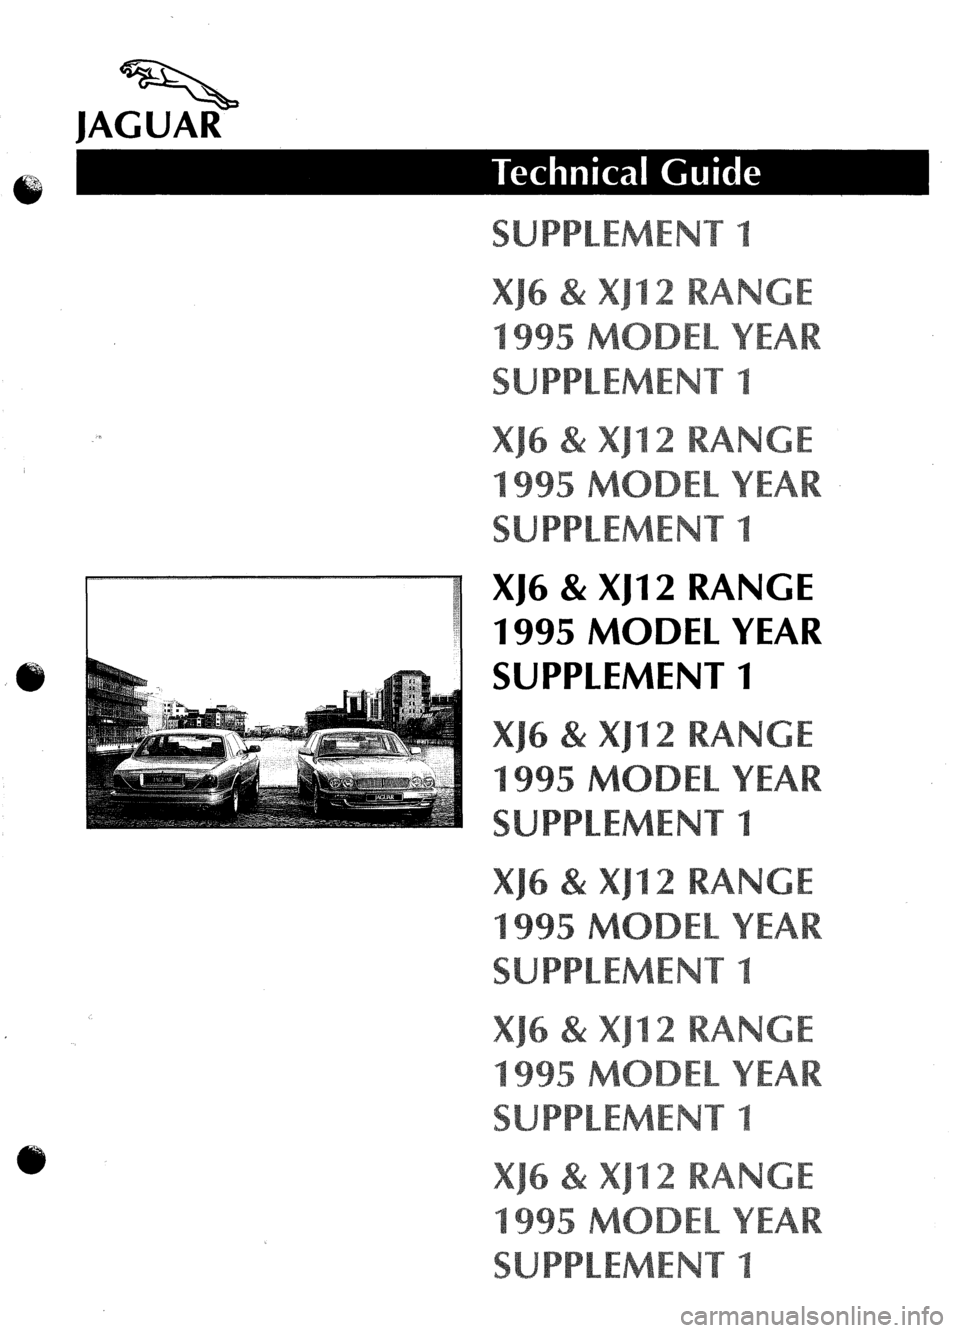 JAGUAR XJ6 1995 2.G Model Year Supplement Manual, Page 1